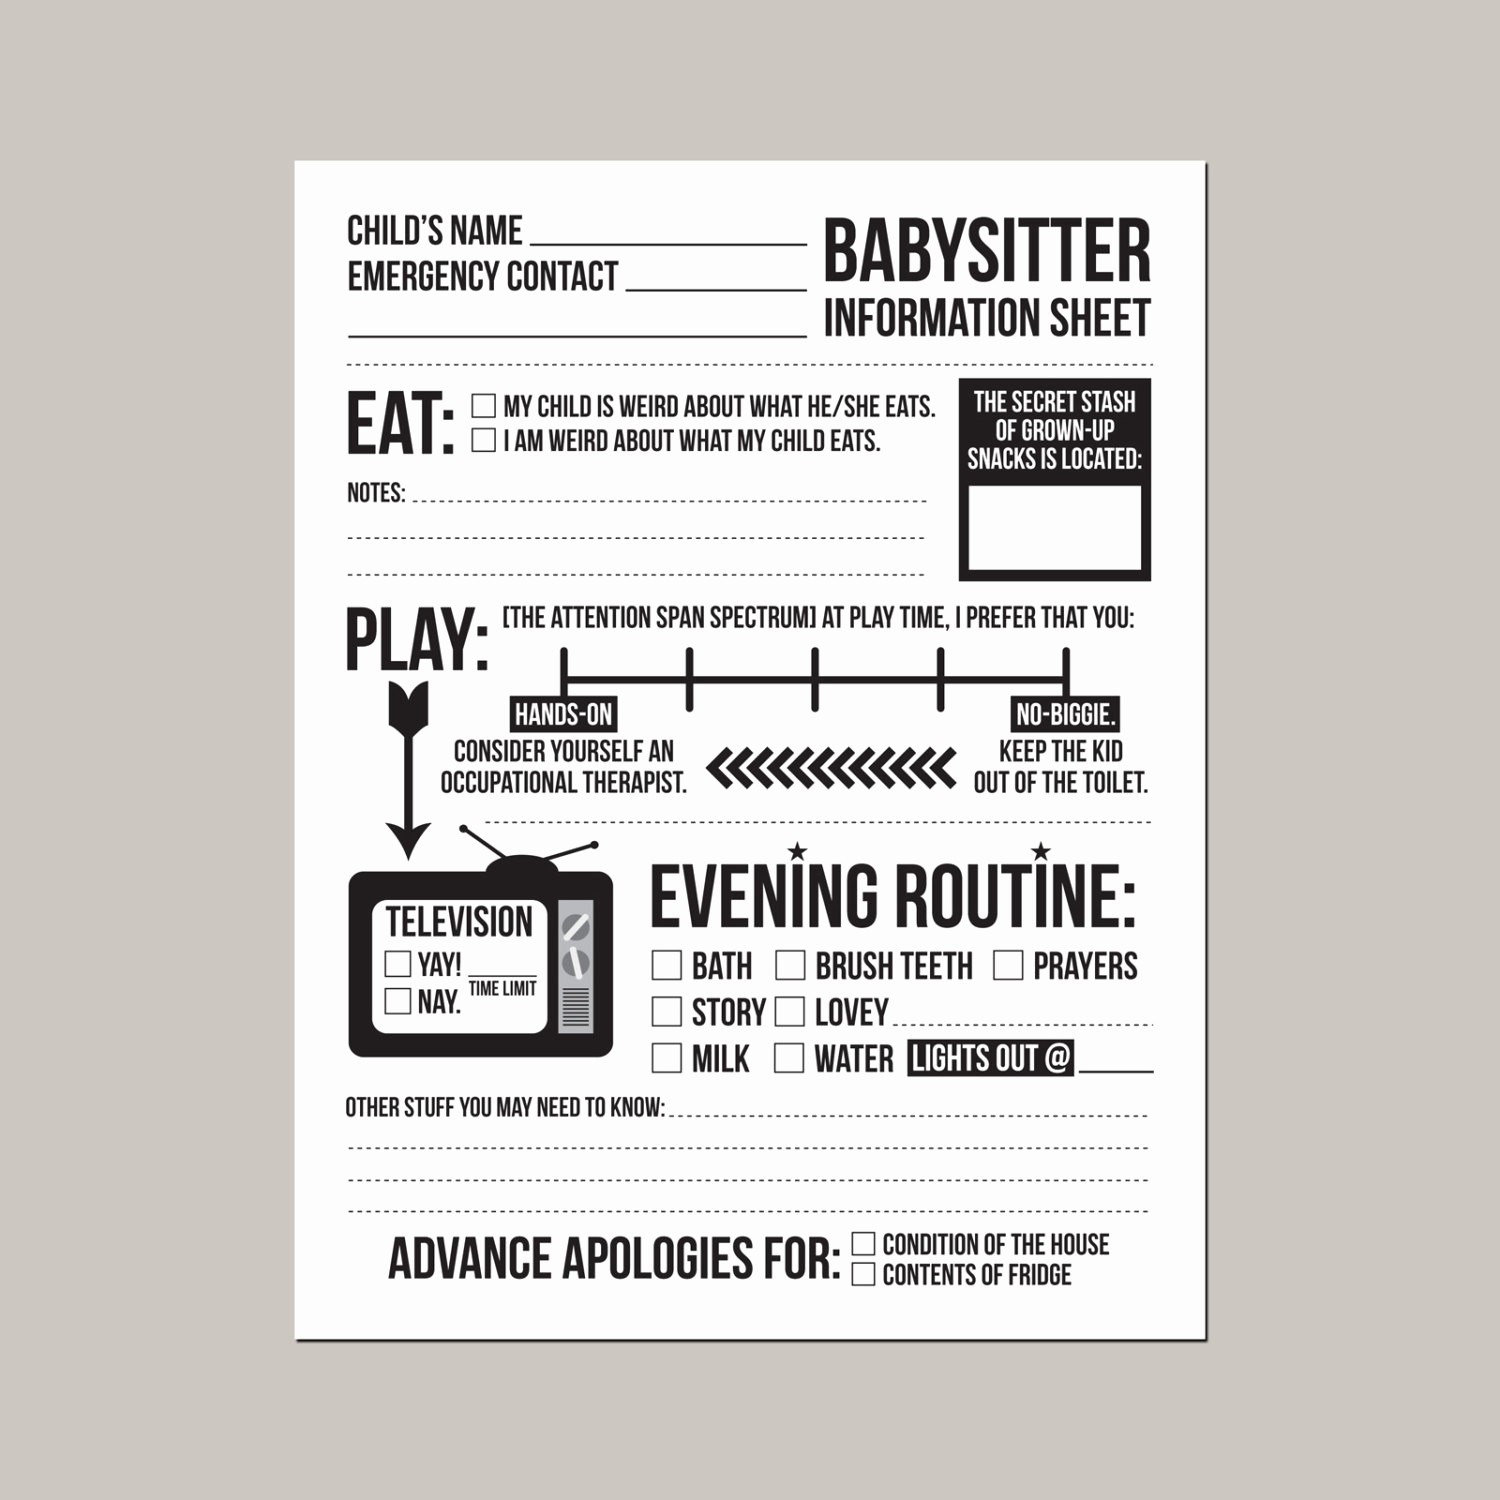 Emergency Contact List for Nanny Awesome Instant Able Babysitter Information Sheet